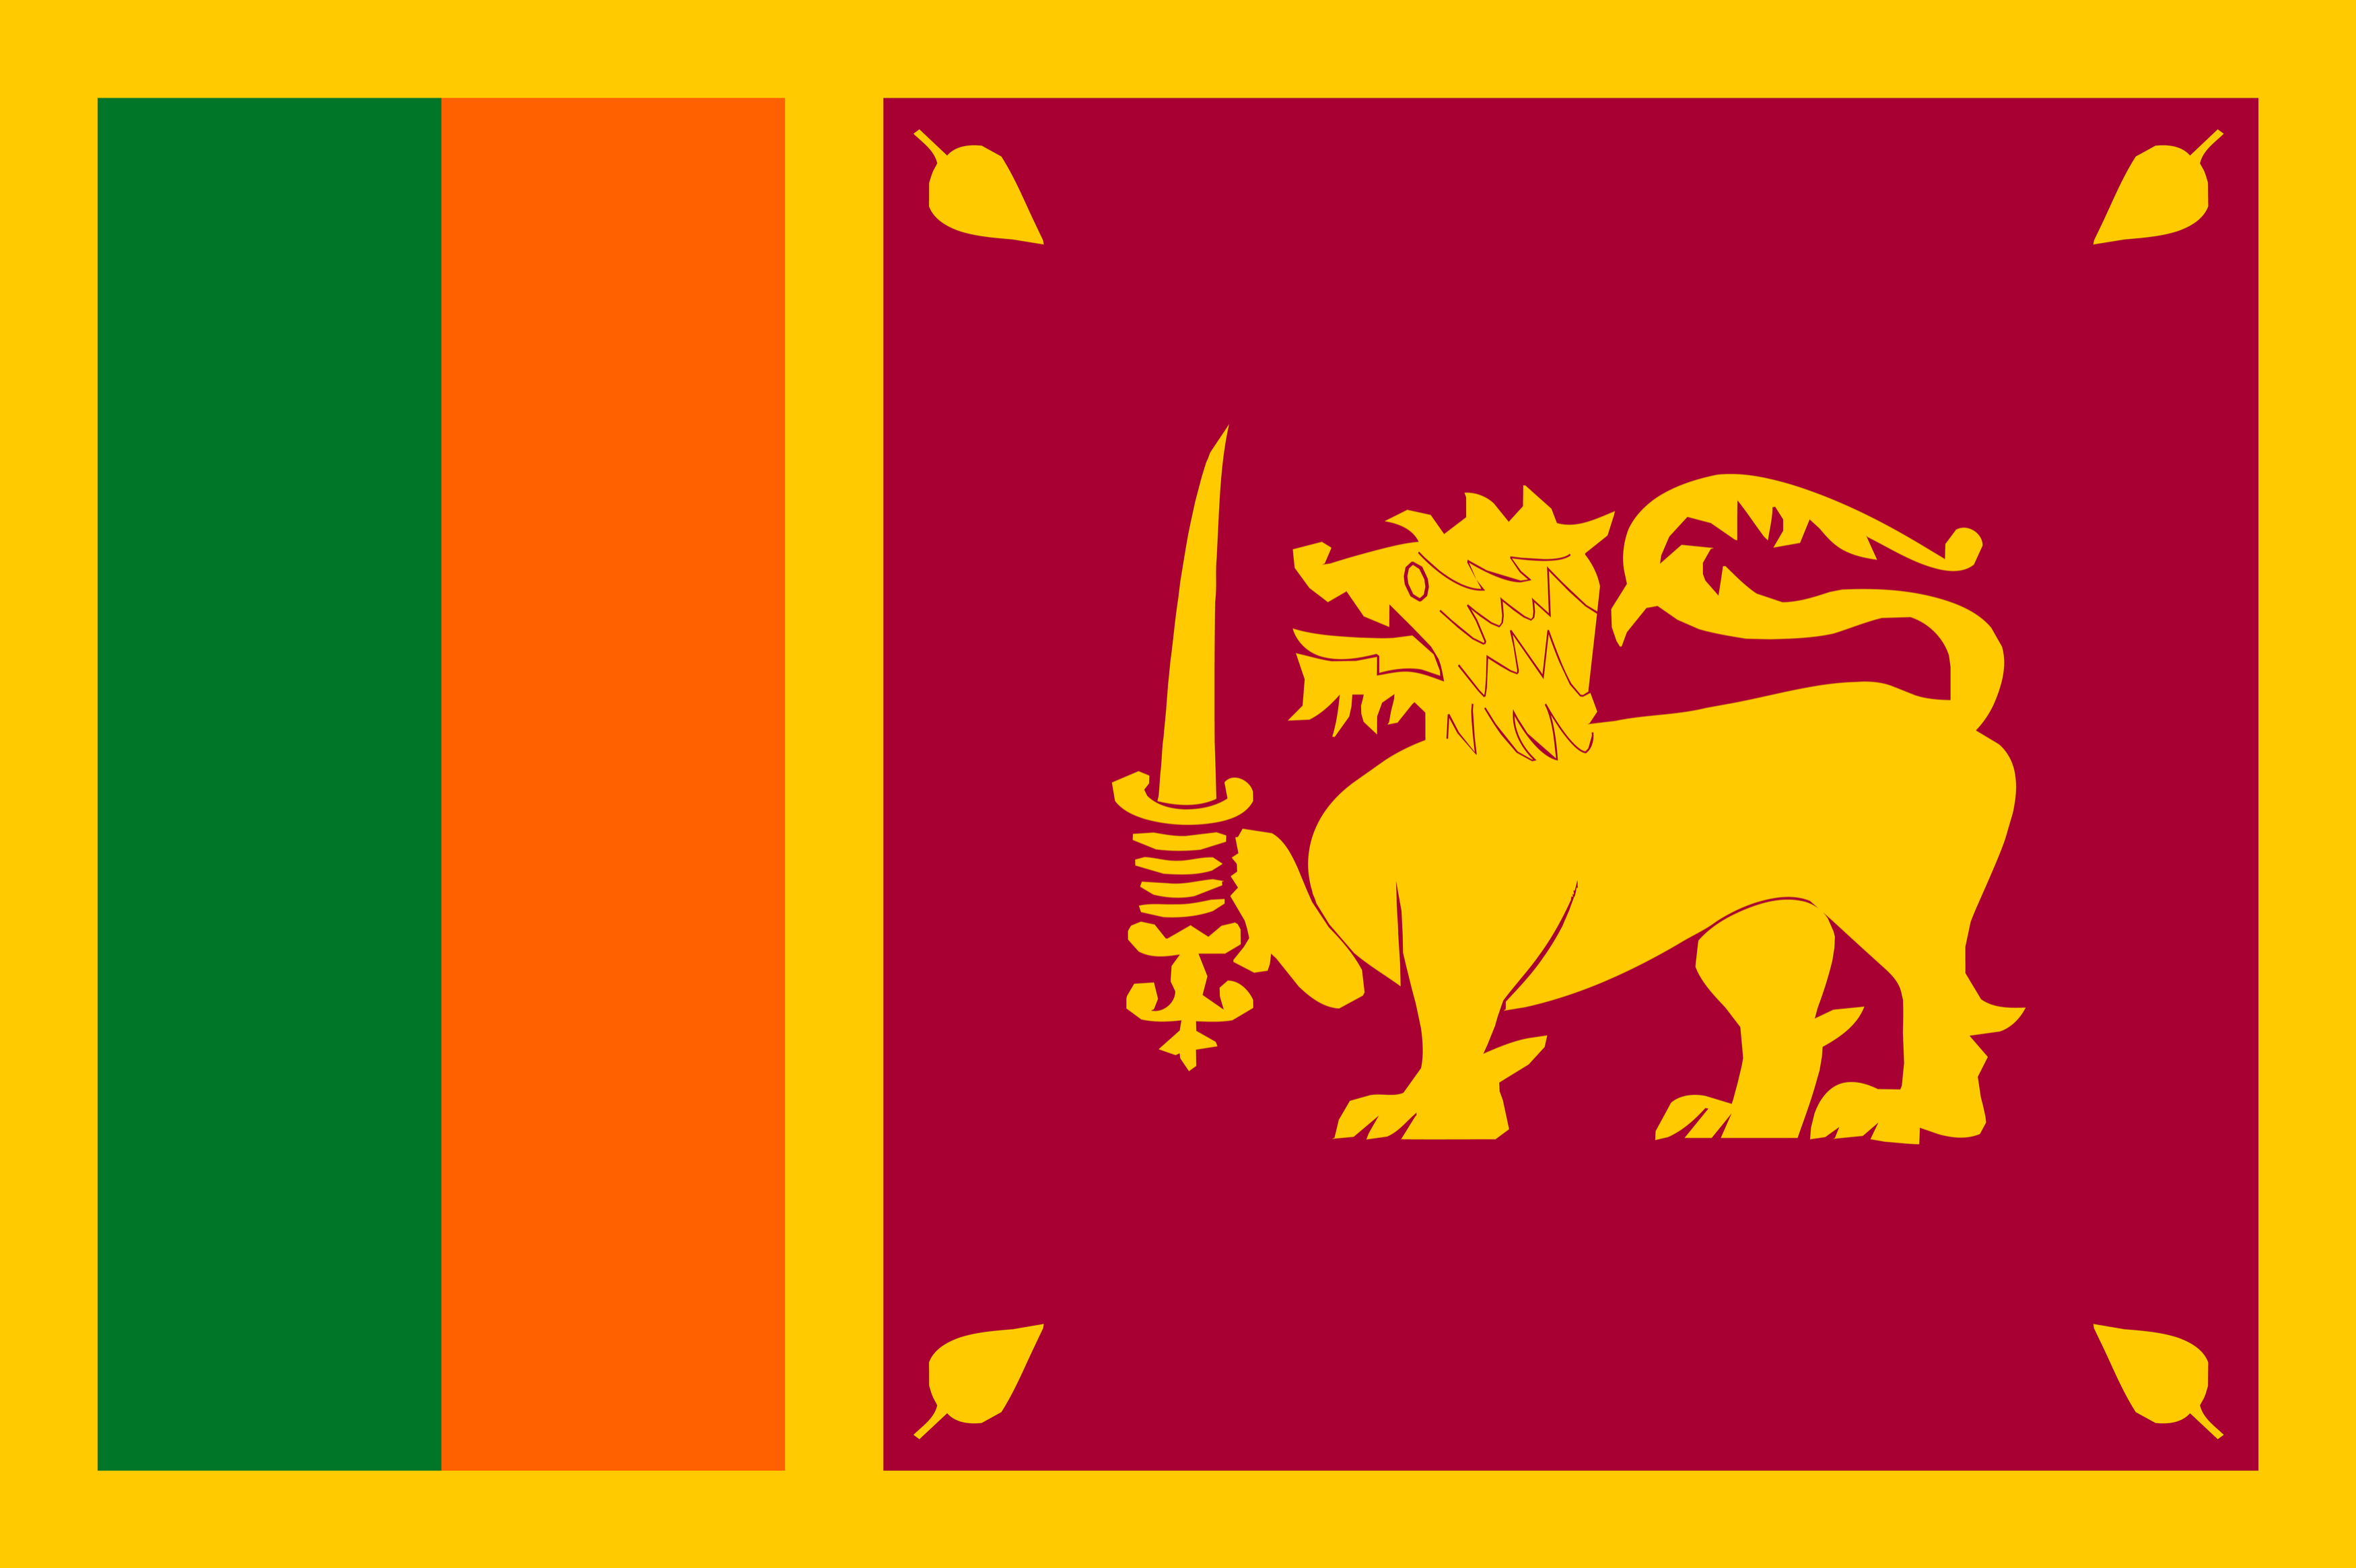 The design of the Sri Lankan flag represents the different cultural groups and religions of Sri Lanka.